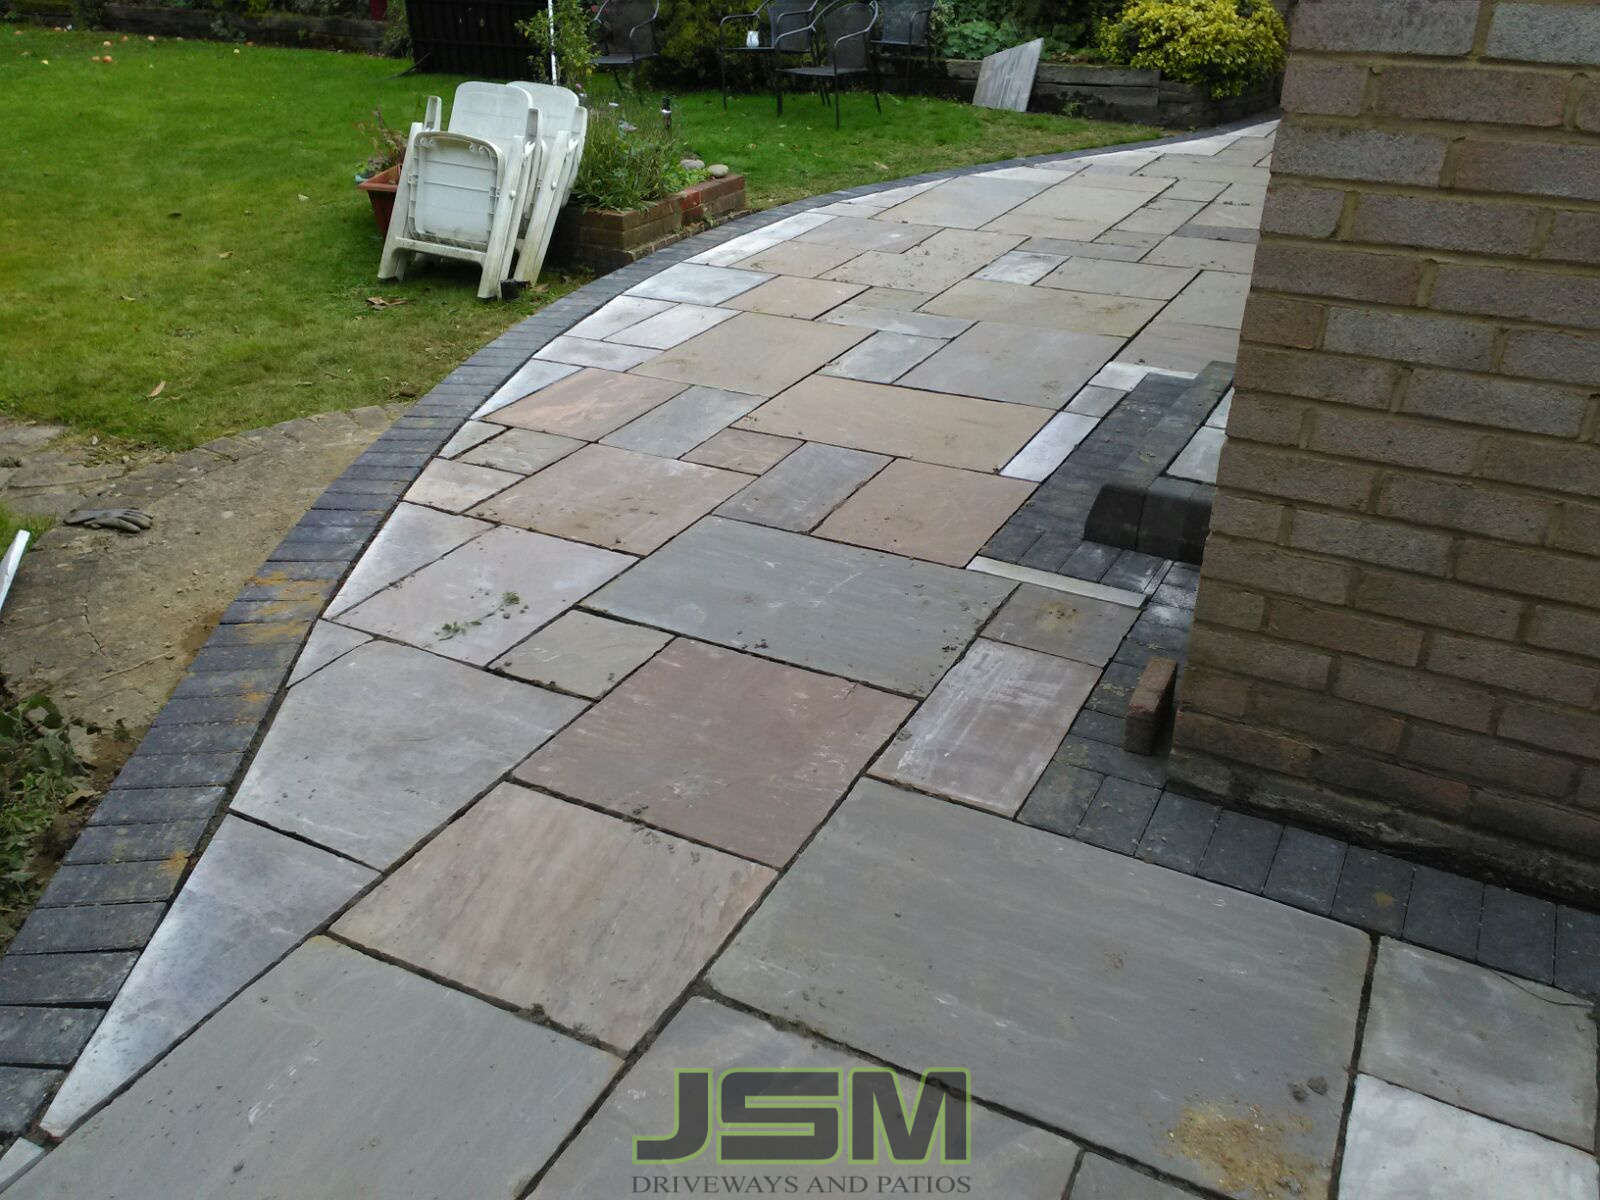 Patio Paving Company in Nash, Milton Keynes